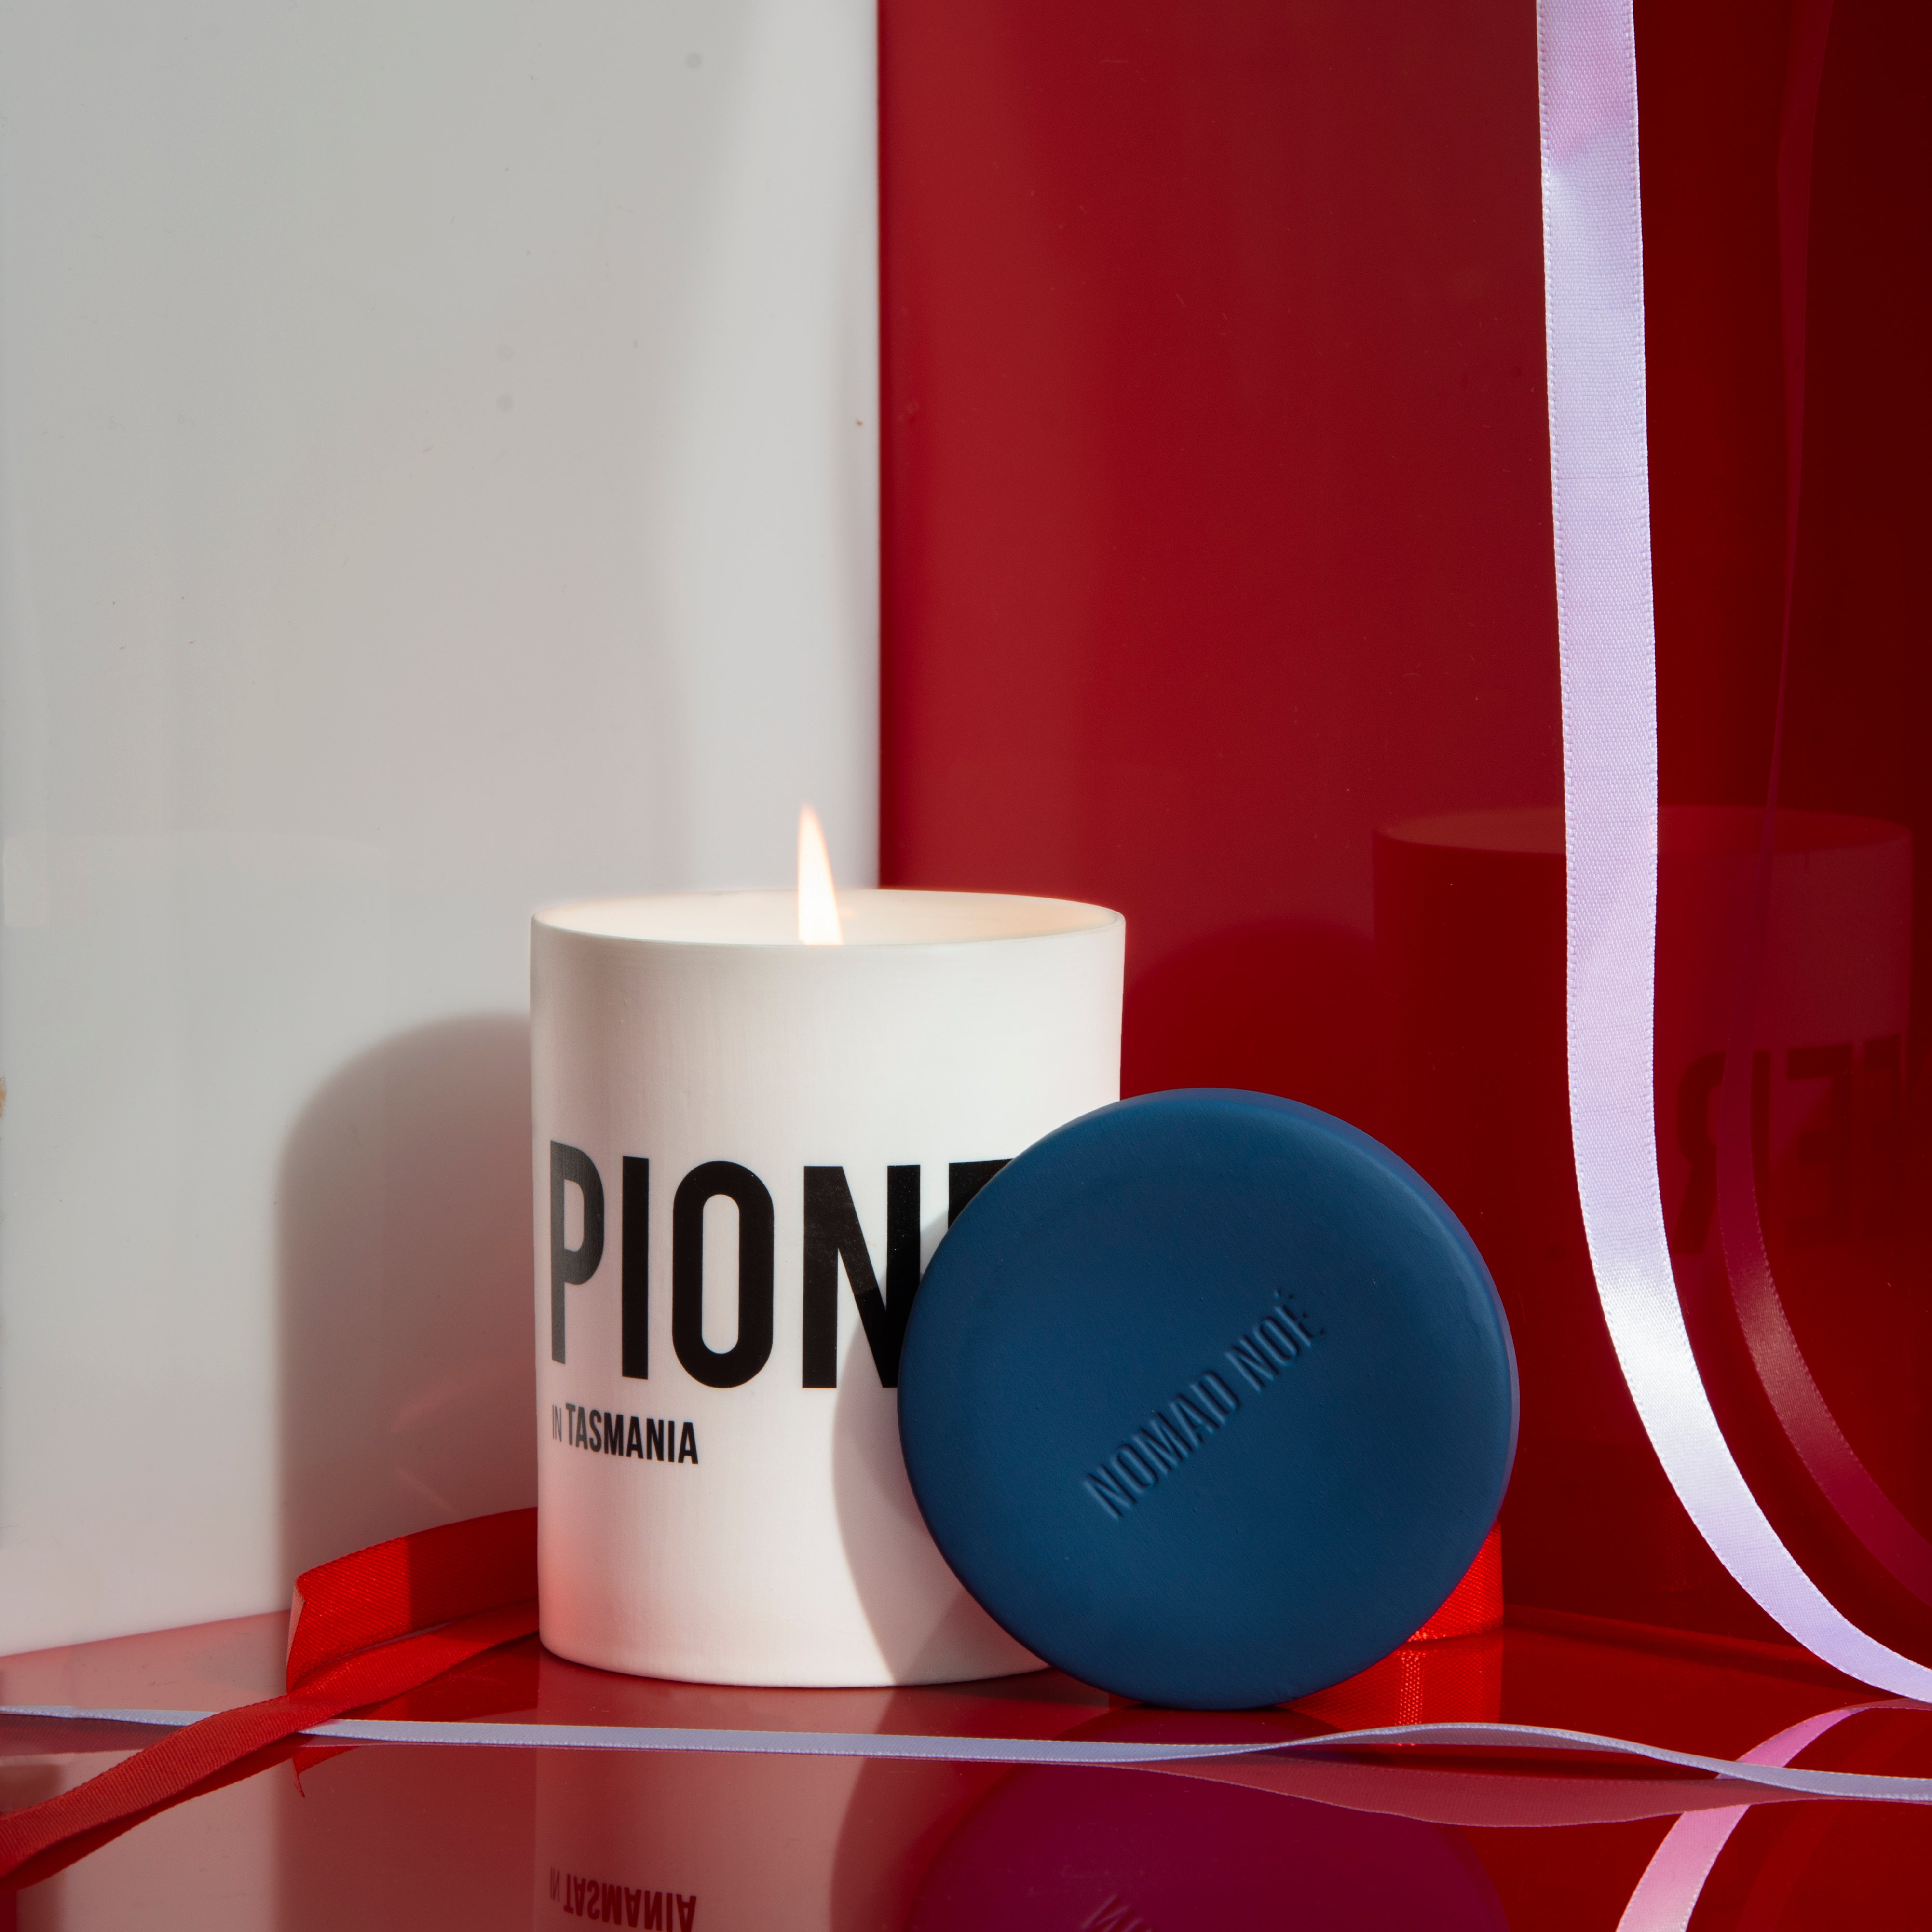 Pioneer scented candle by Nomad Noe